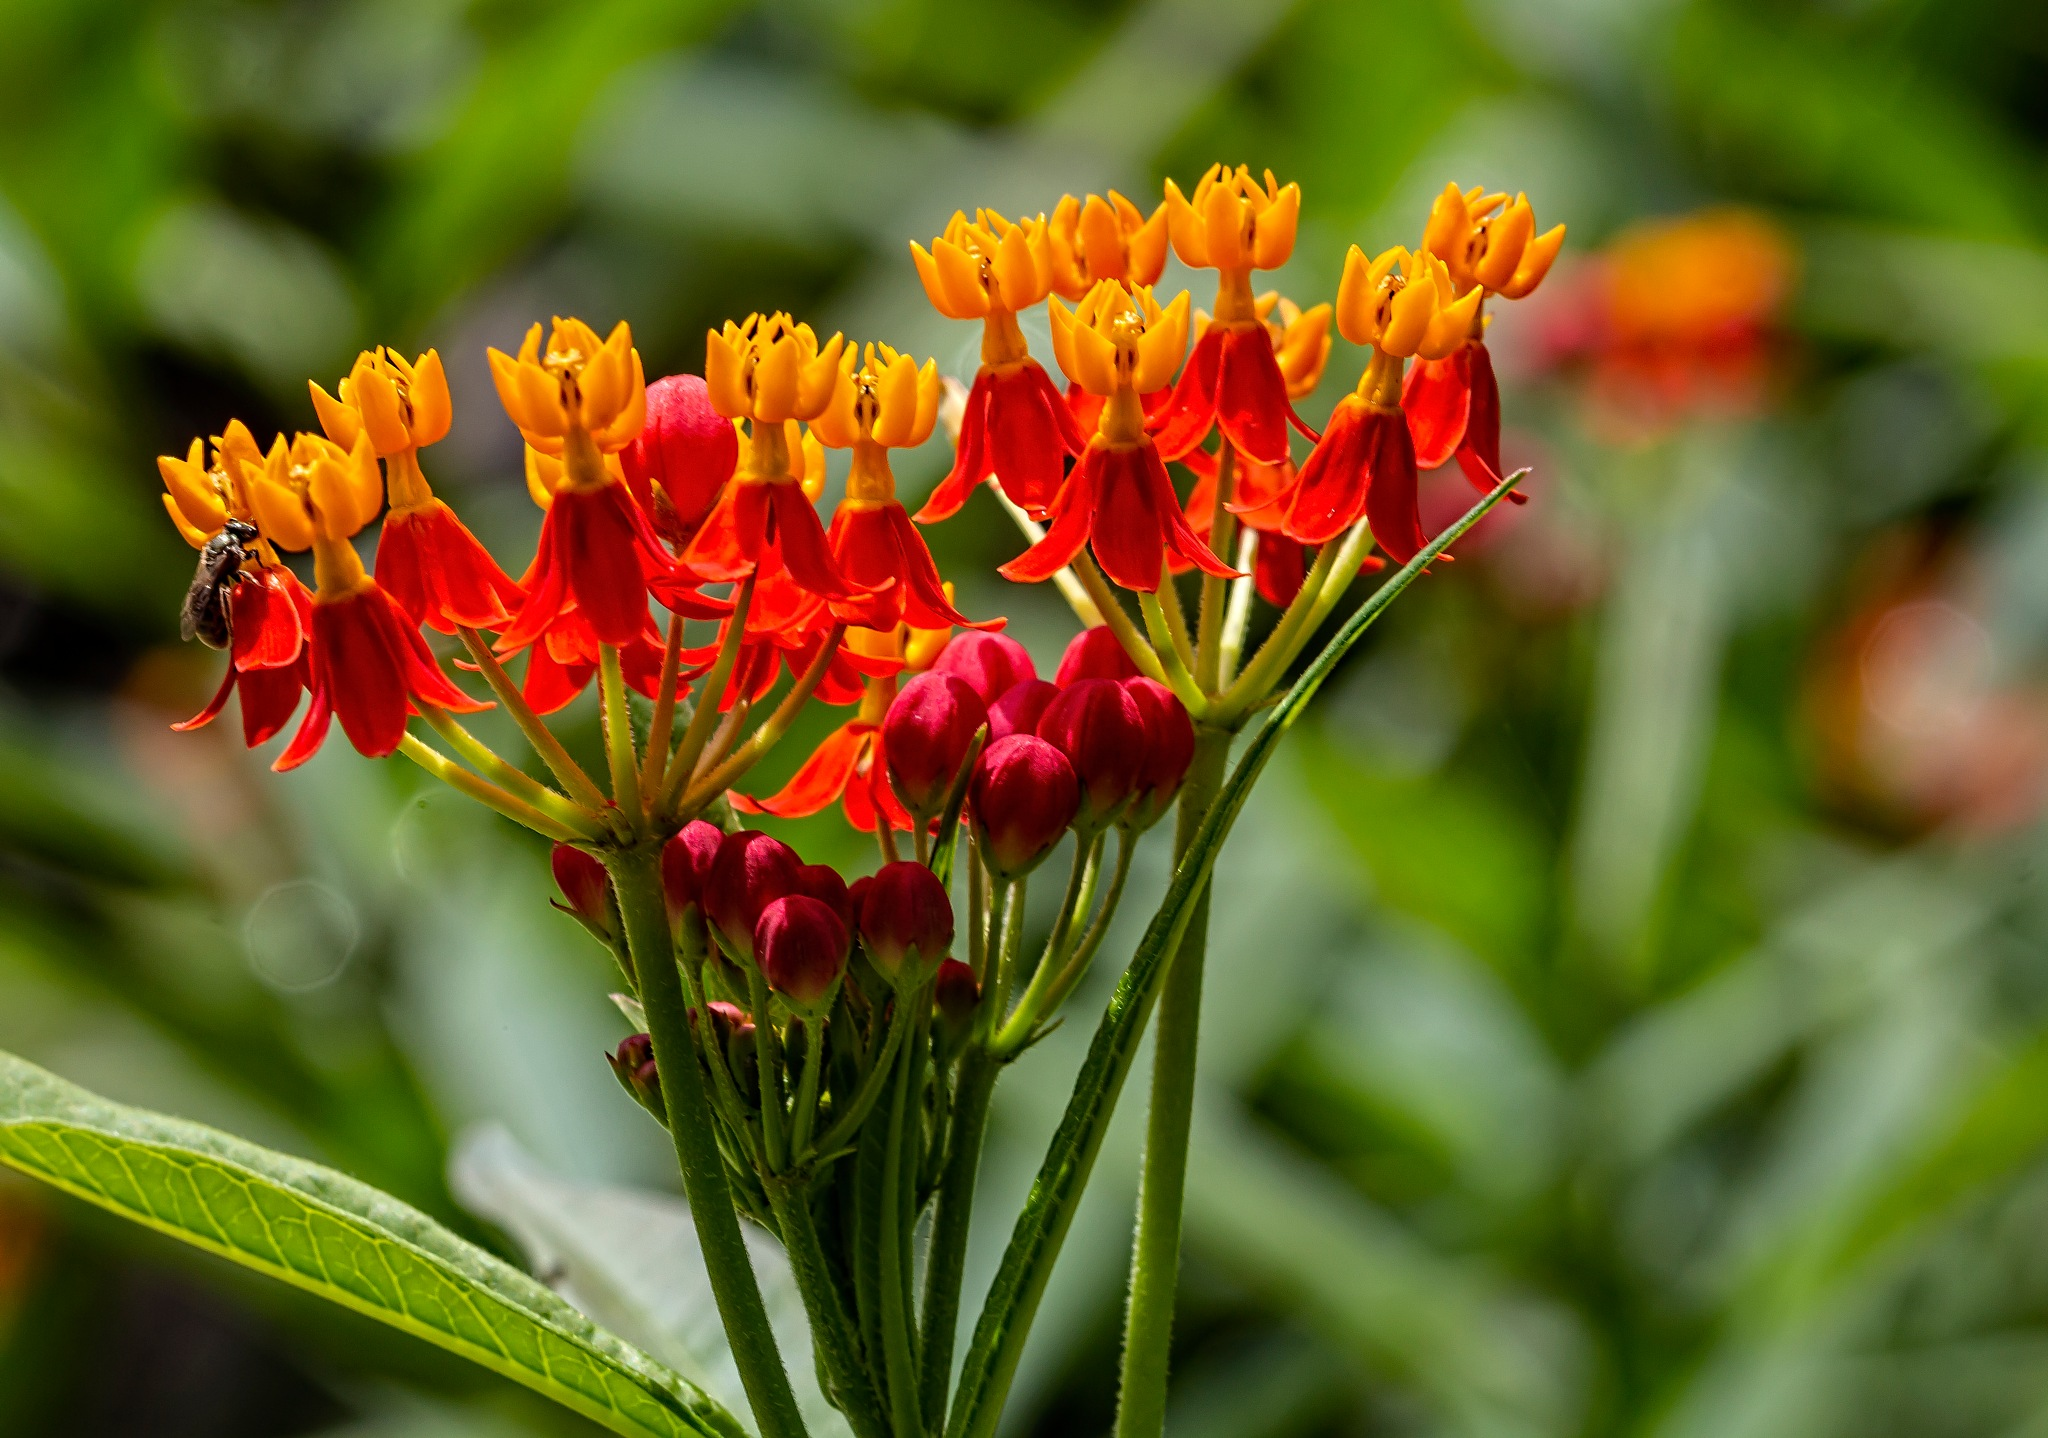 Red and Orange Flowers by robertullmann